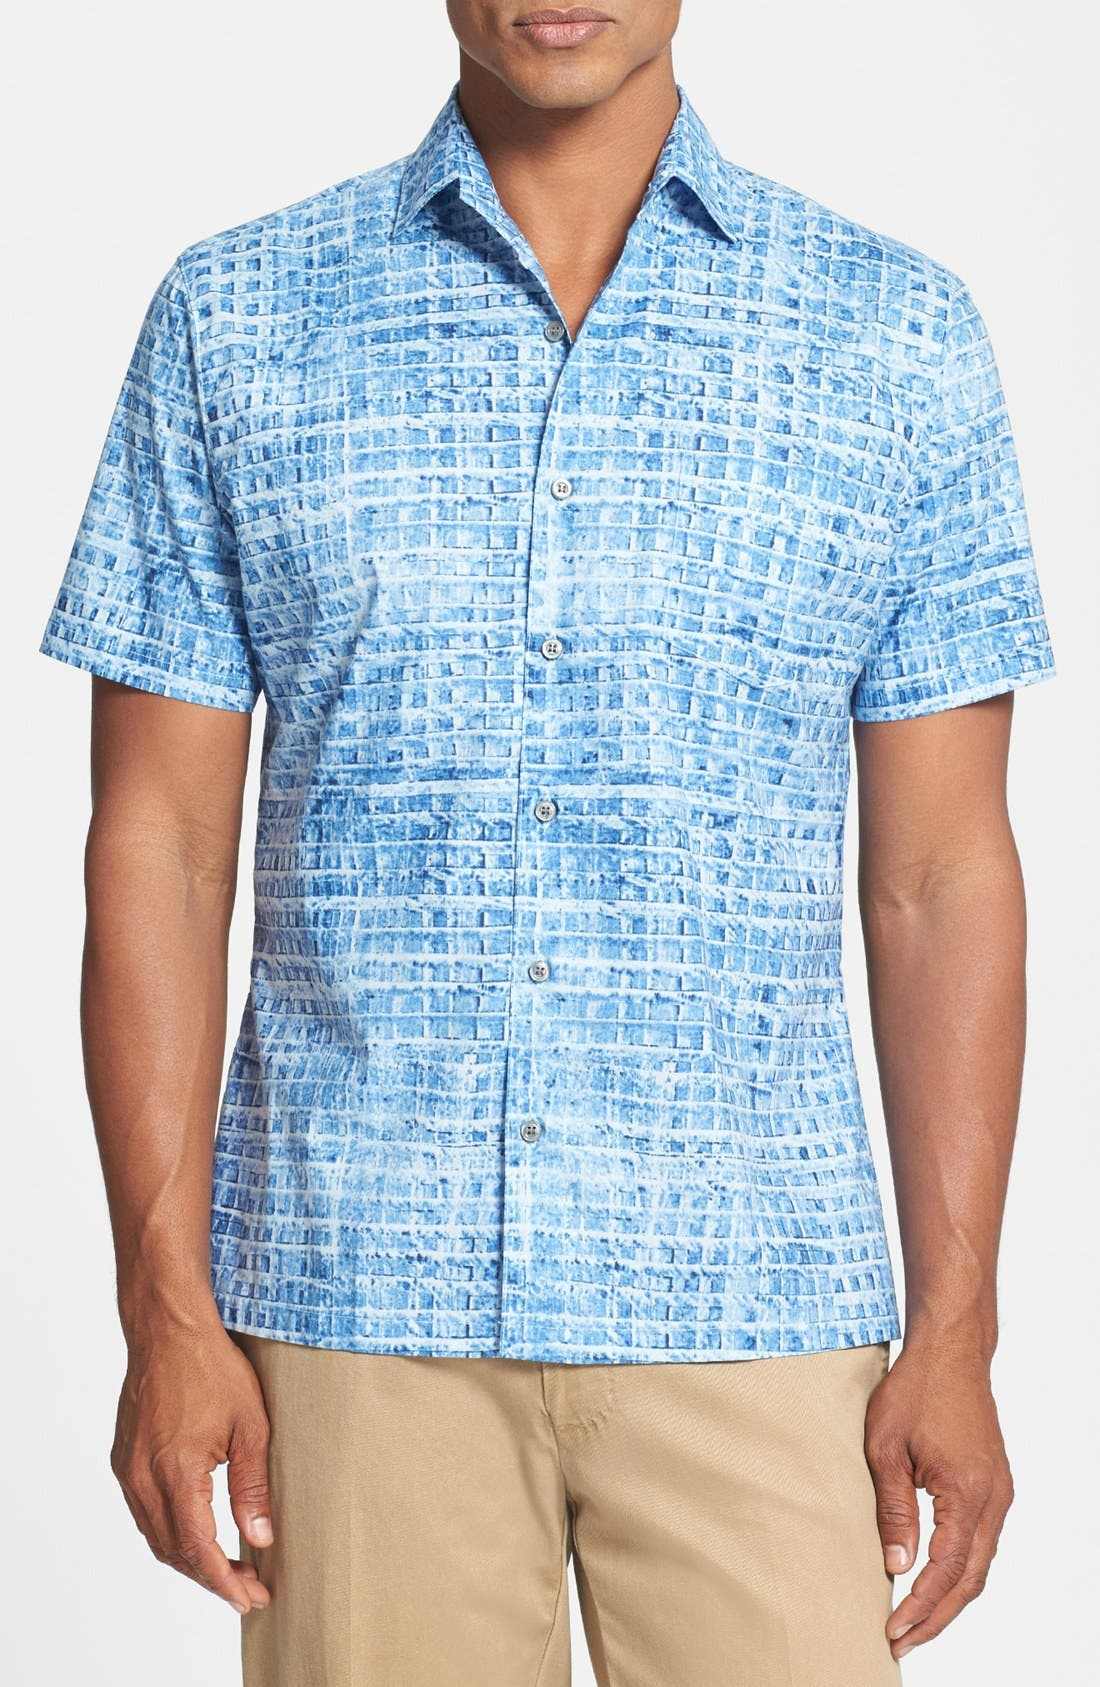 Alternate Image 1 Selected - Tori Richard 'Glass Tile' Classic Fit Short Sleeve Sport Shirt